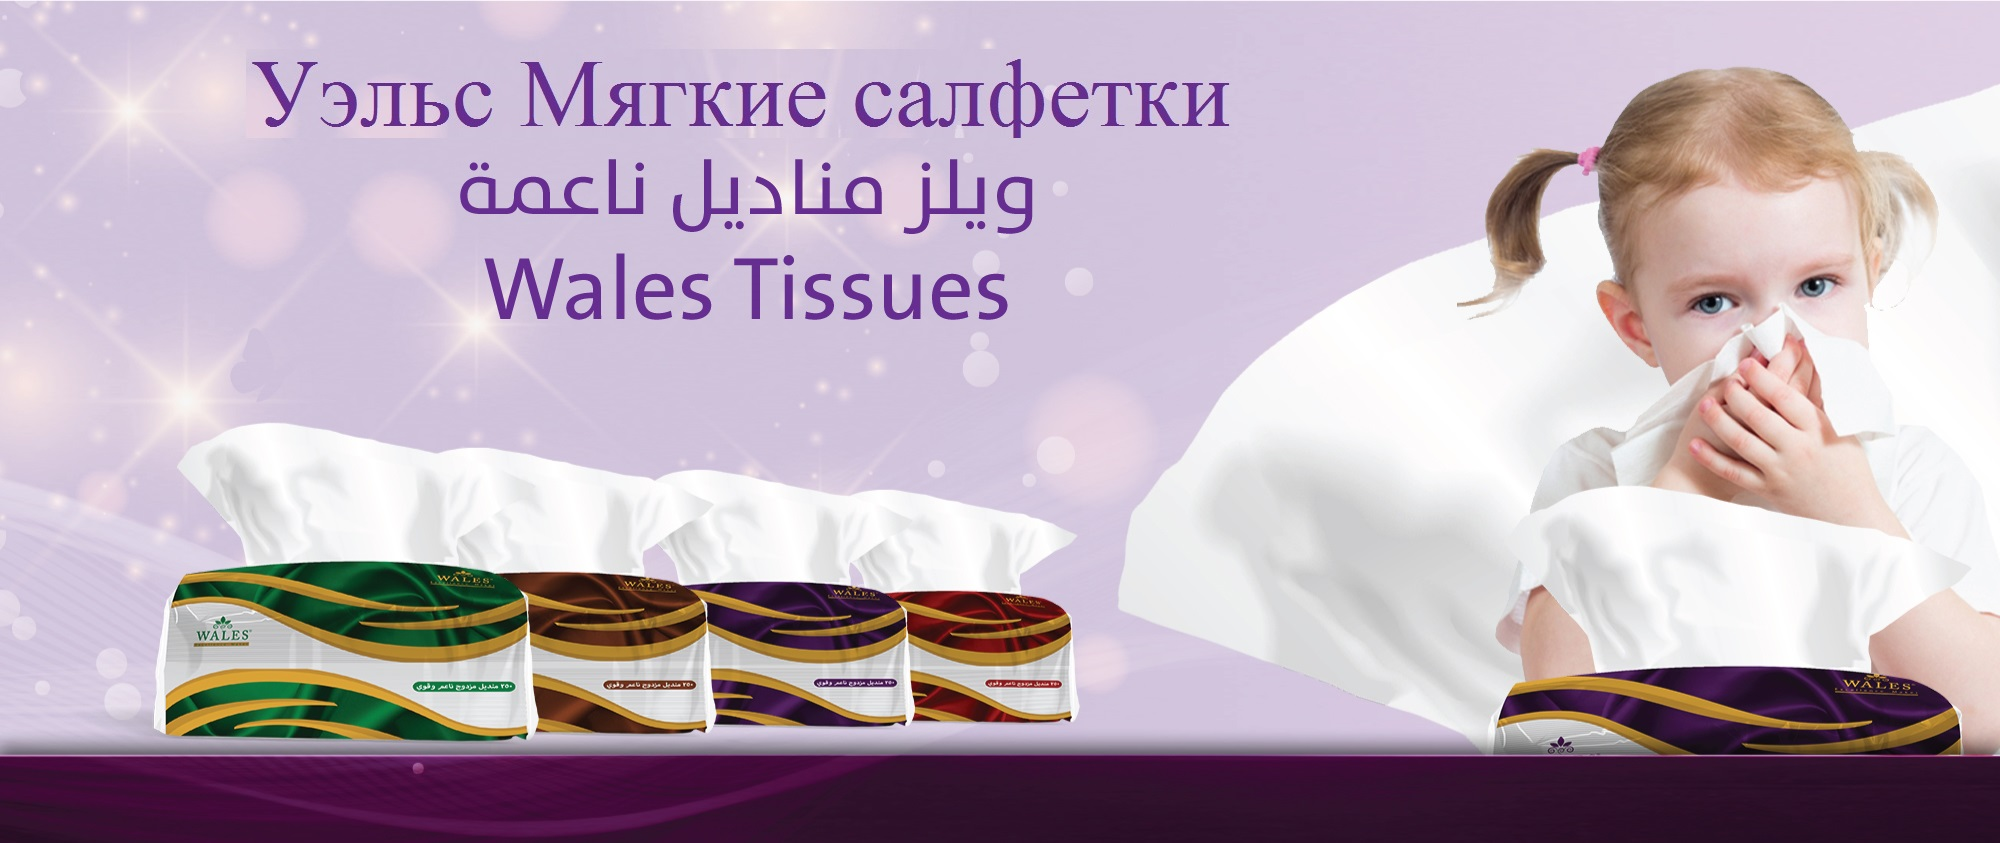 wales_tissue